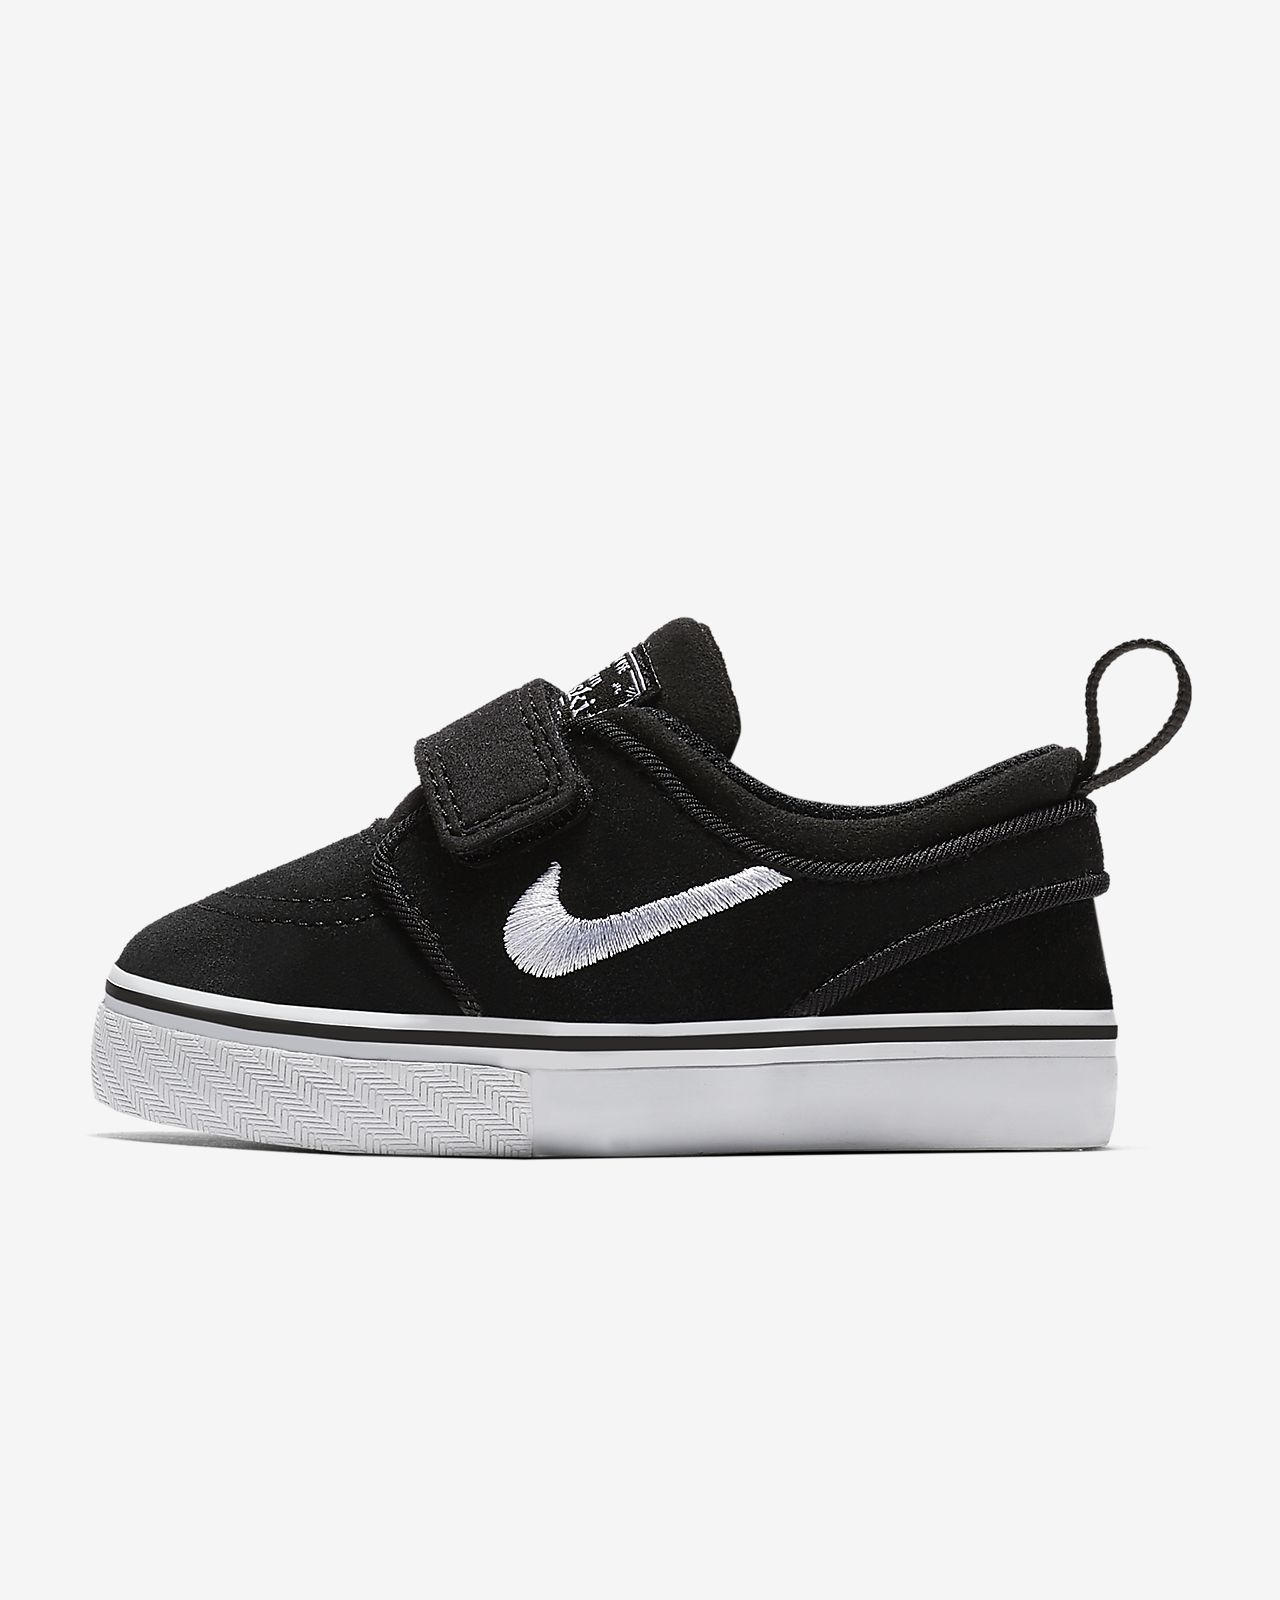 Nike SB Stefan Janoski Infant/Toddler Kids' Shoe